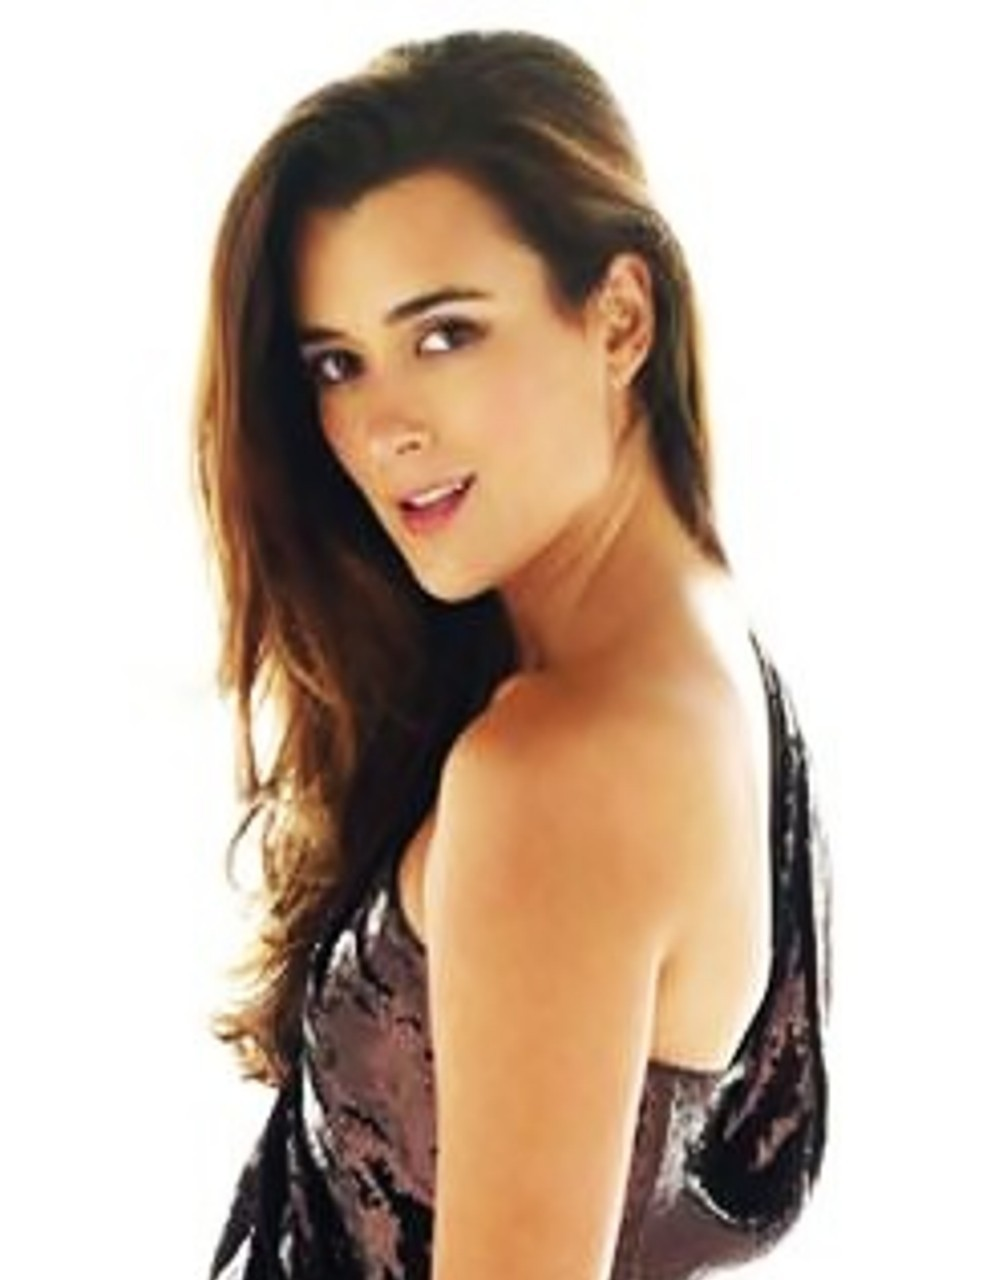 Cote De Pablo Hot 9 Cote Cote de Pablo Photo 16809768 Fanpop fanclubs x